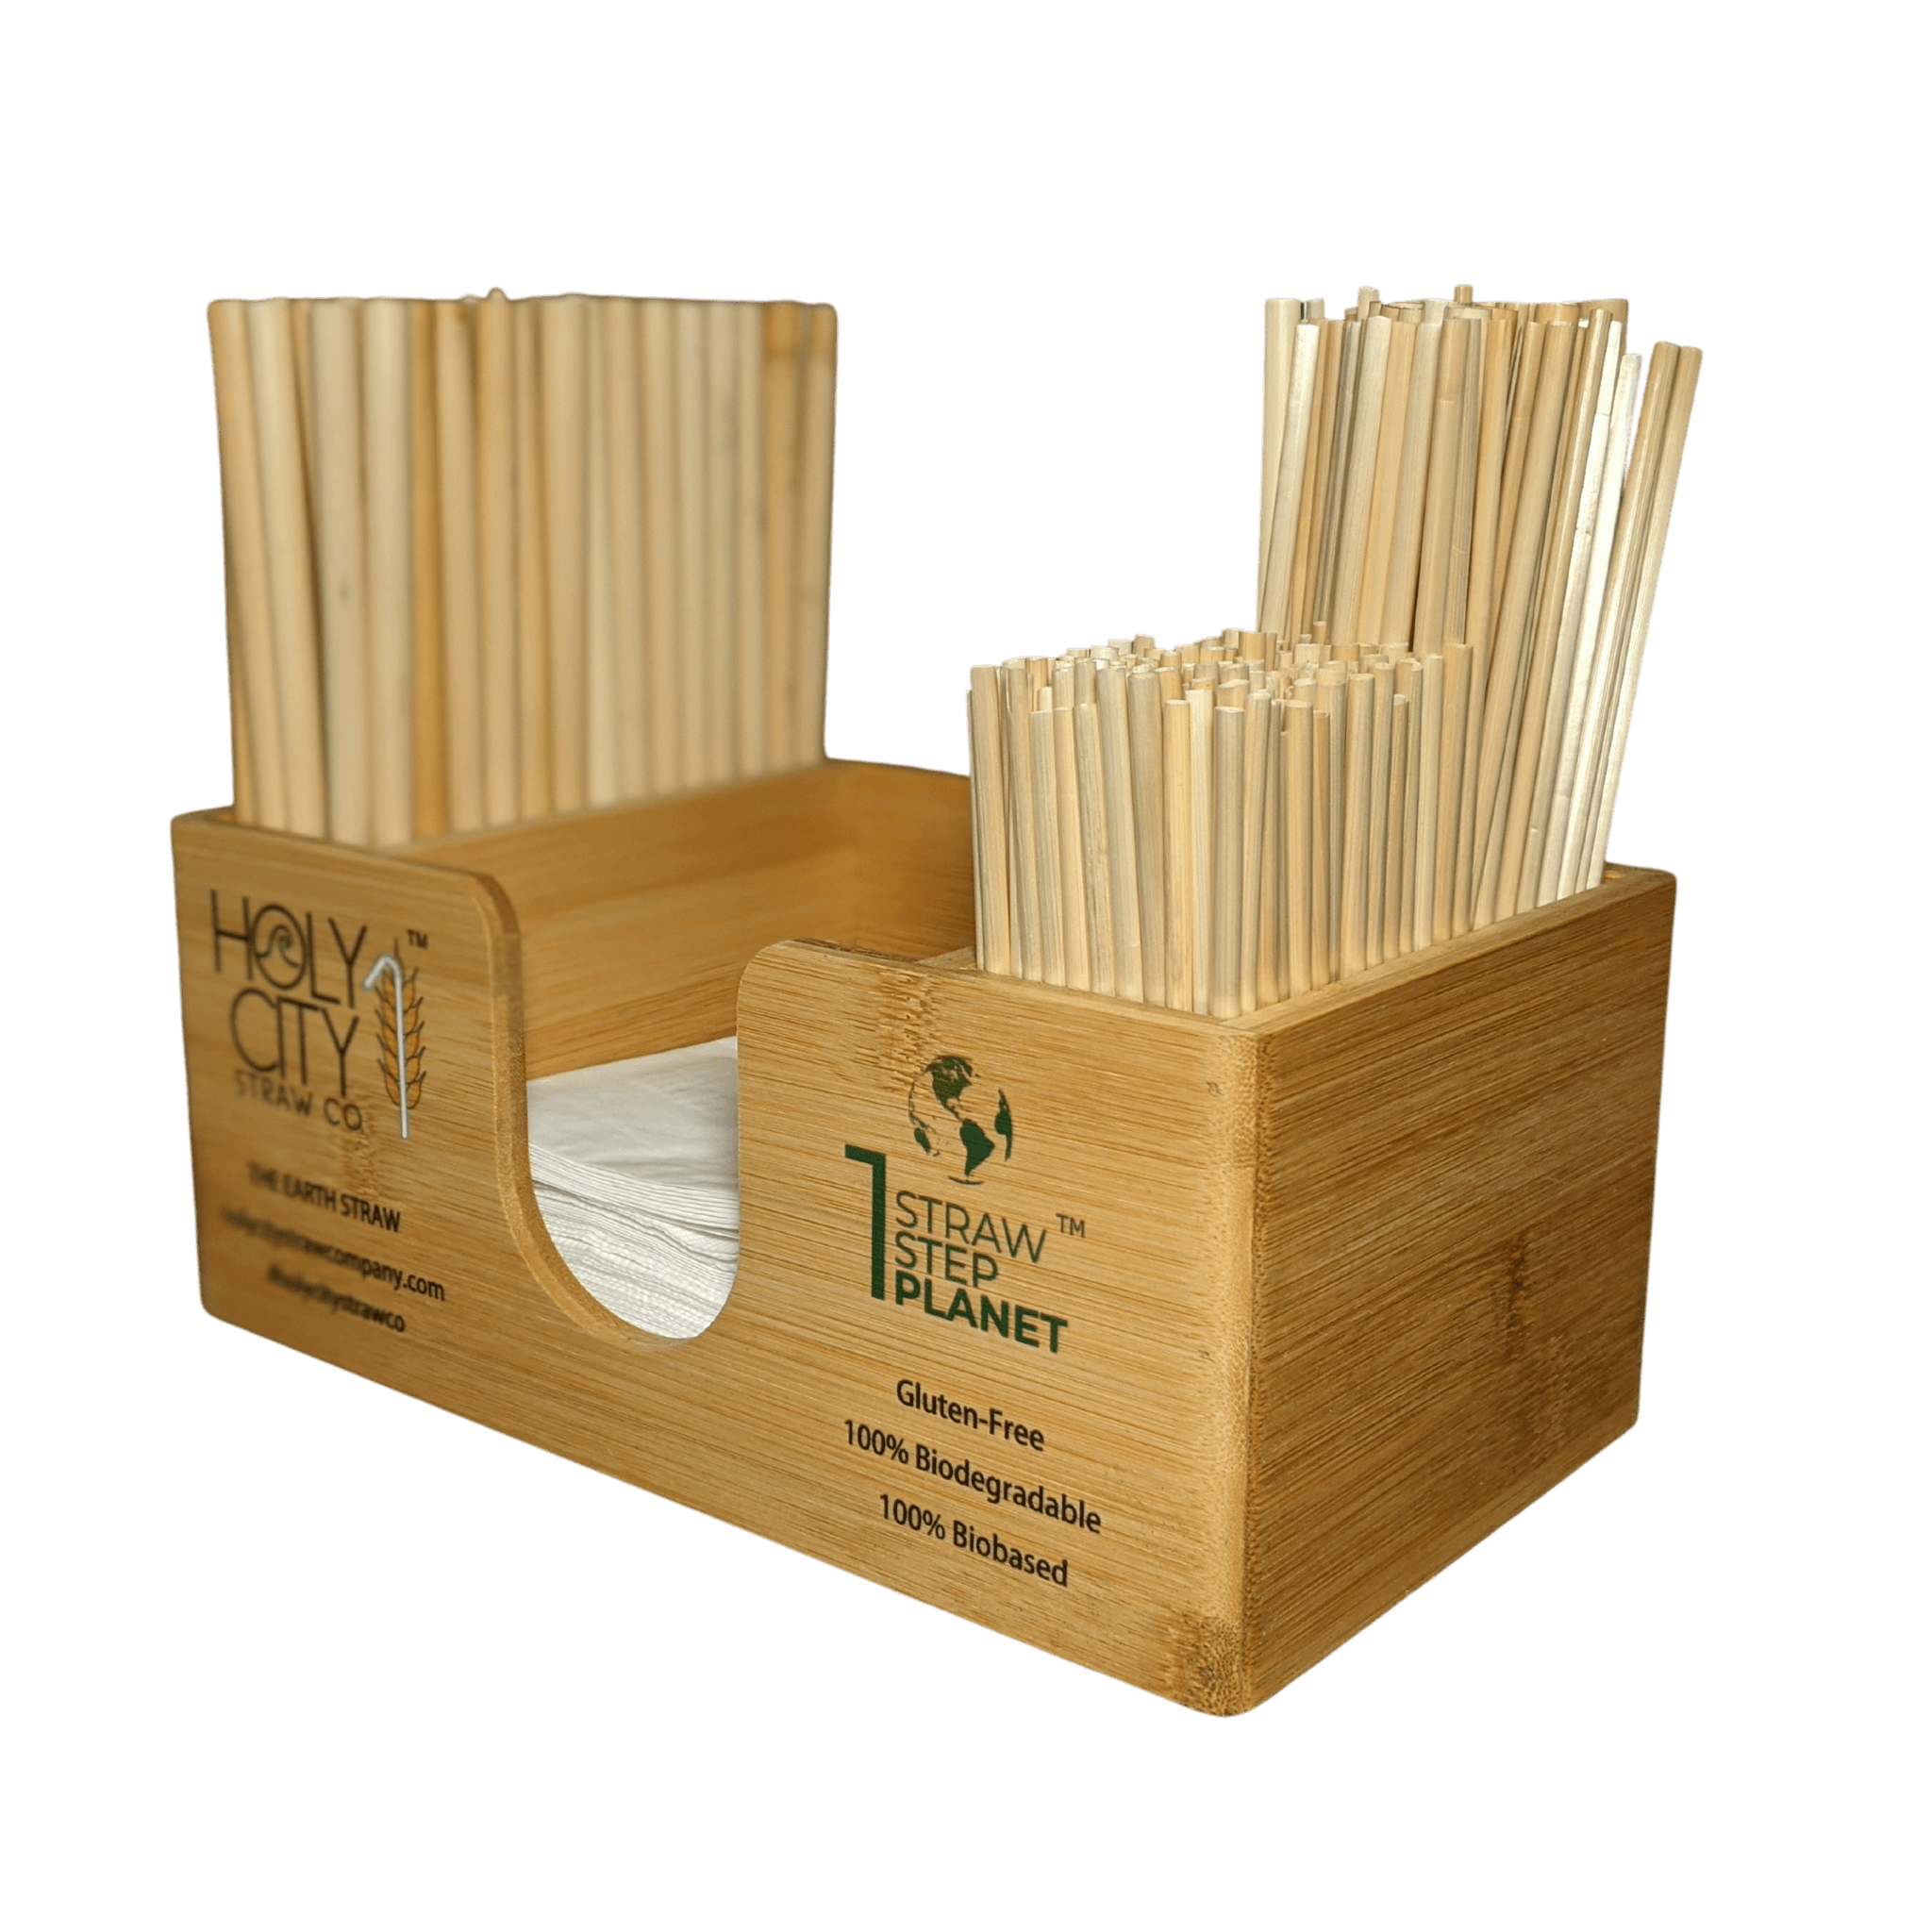 Holy City Straw Company branded straw and napkin bar caddy with straws right